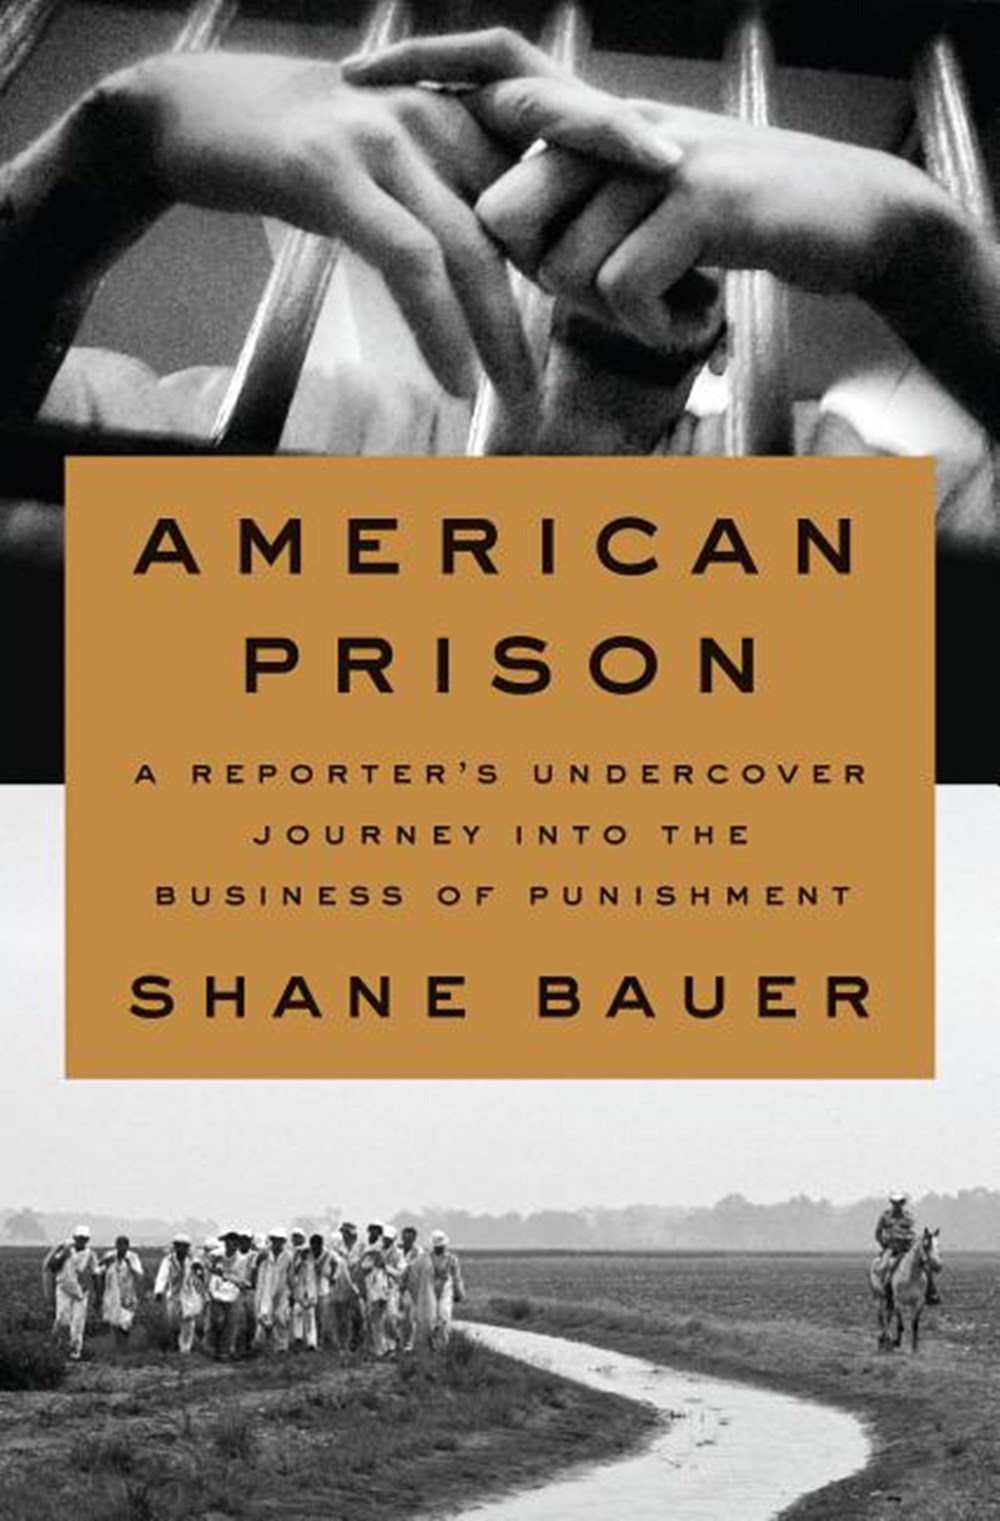 American Prison A Reporter's Undercover Journey Into the Business of Punishment